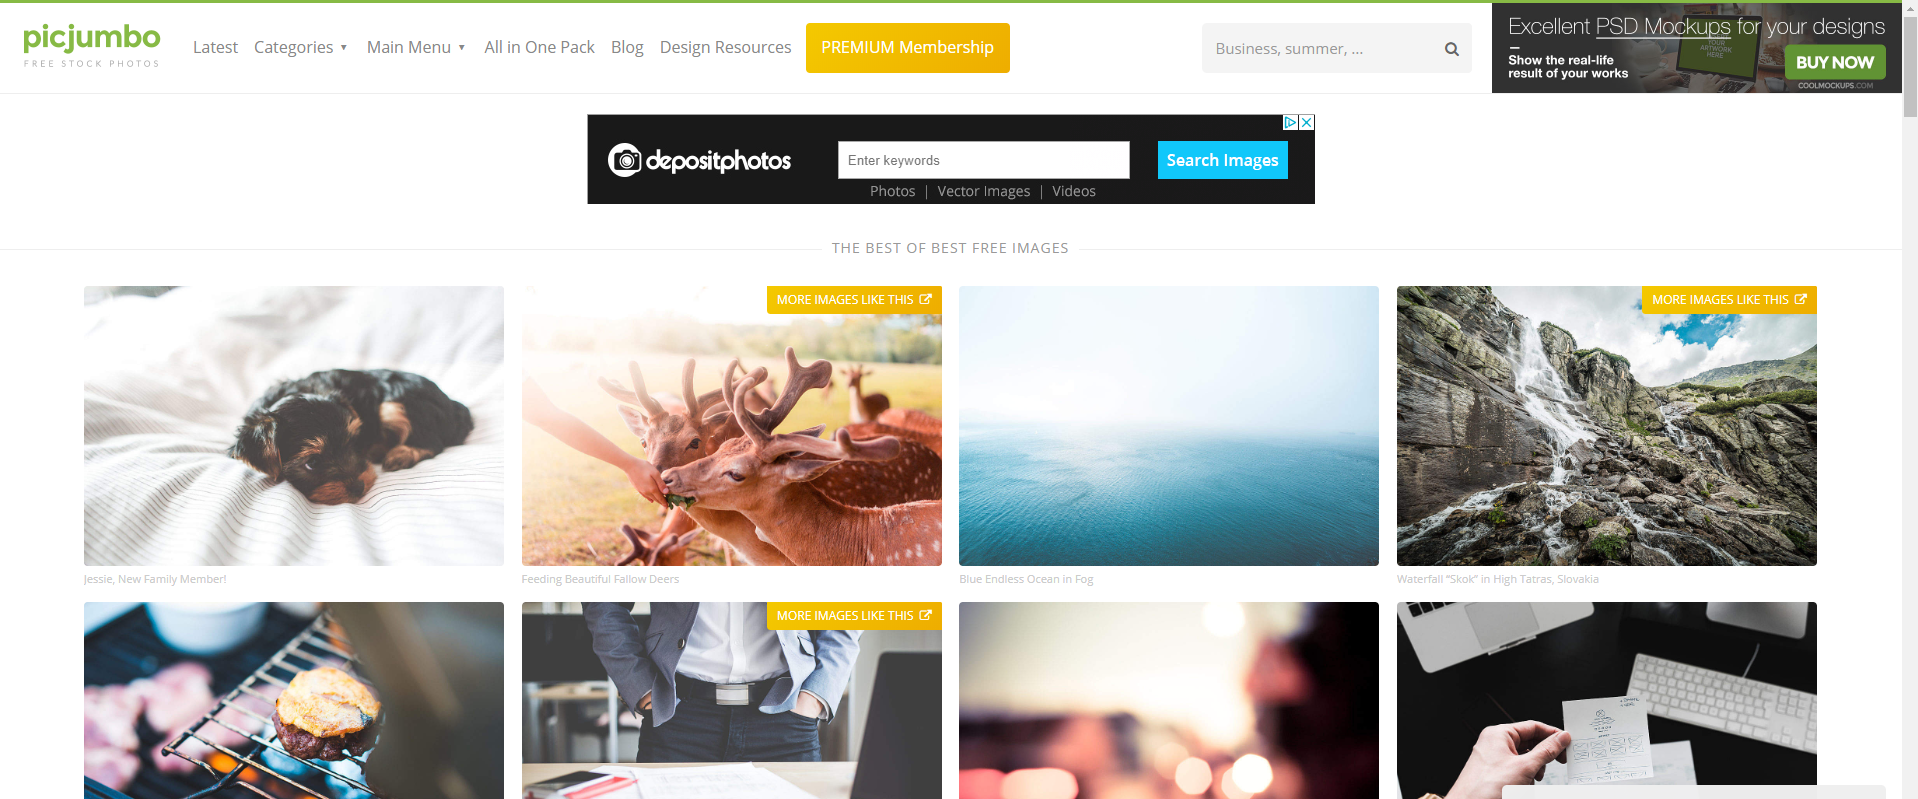 Picjumbo royalty free images